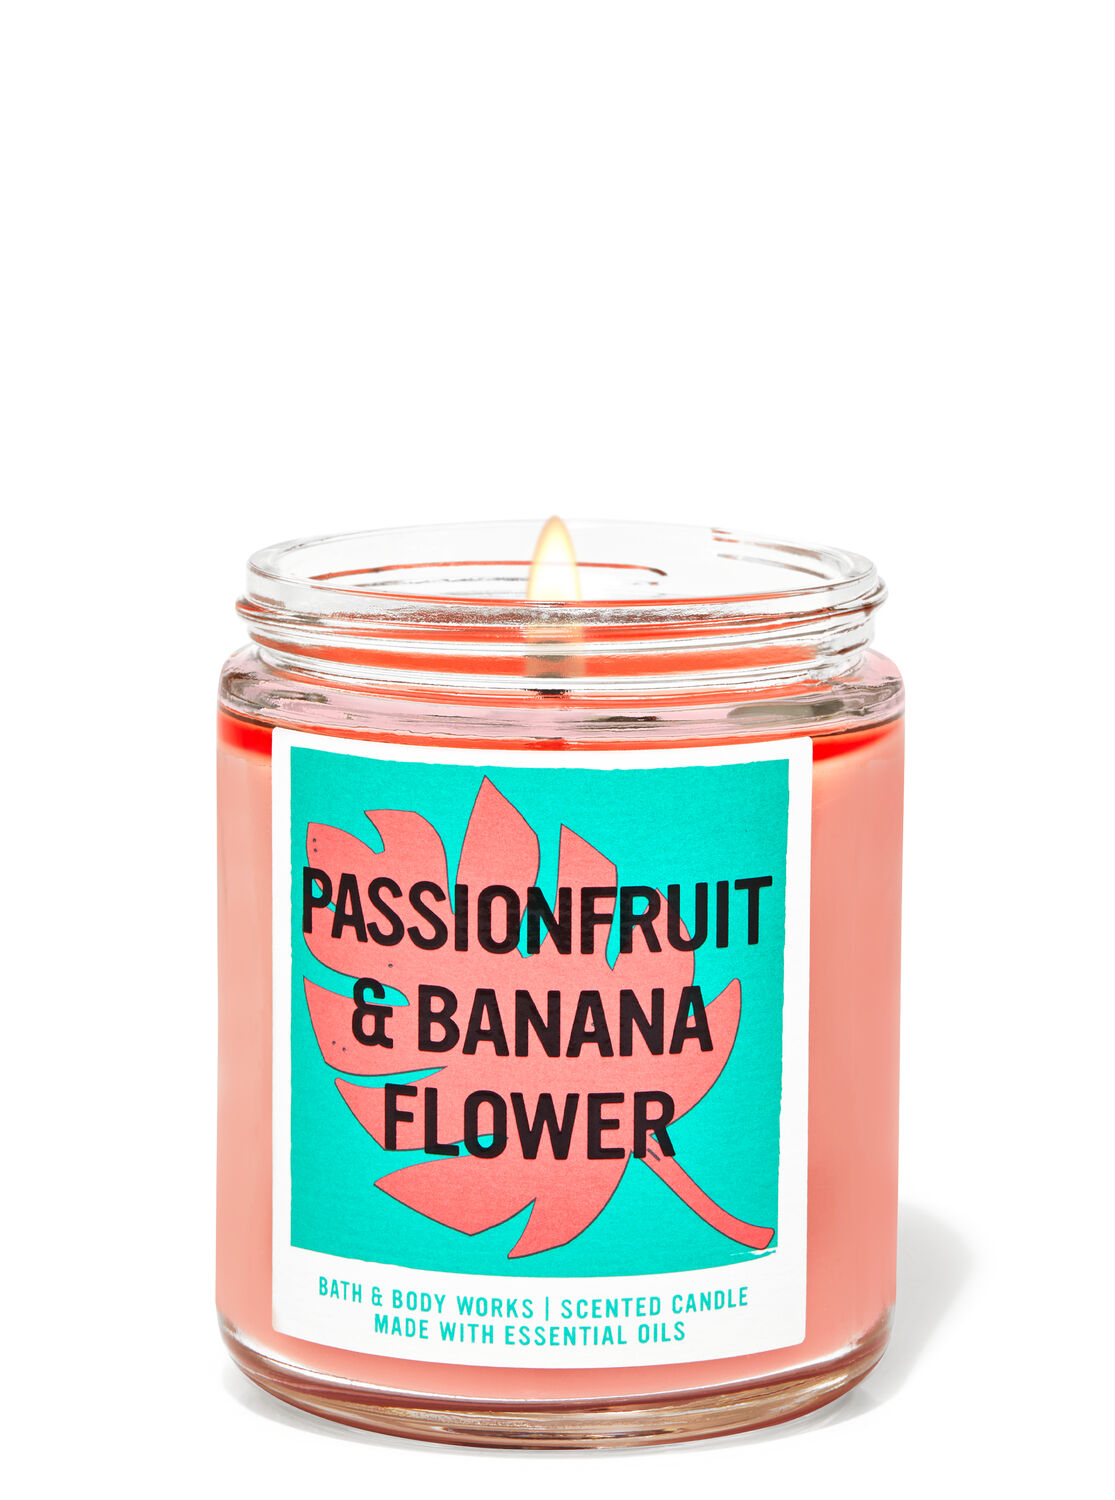 Passionfruit & Banana Flower Single Wick Candle